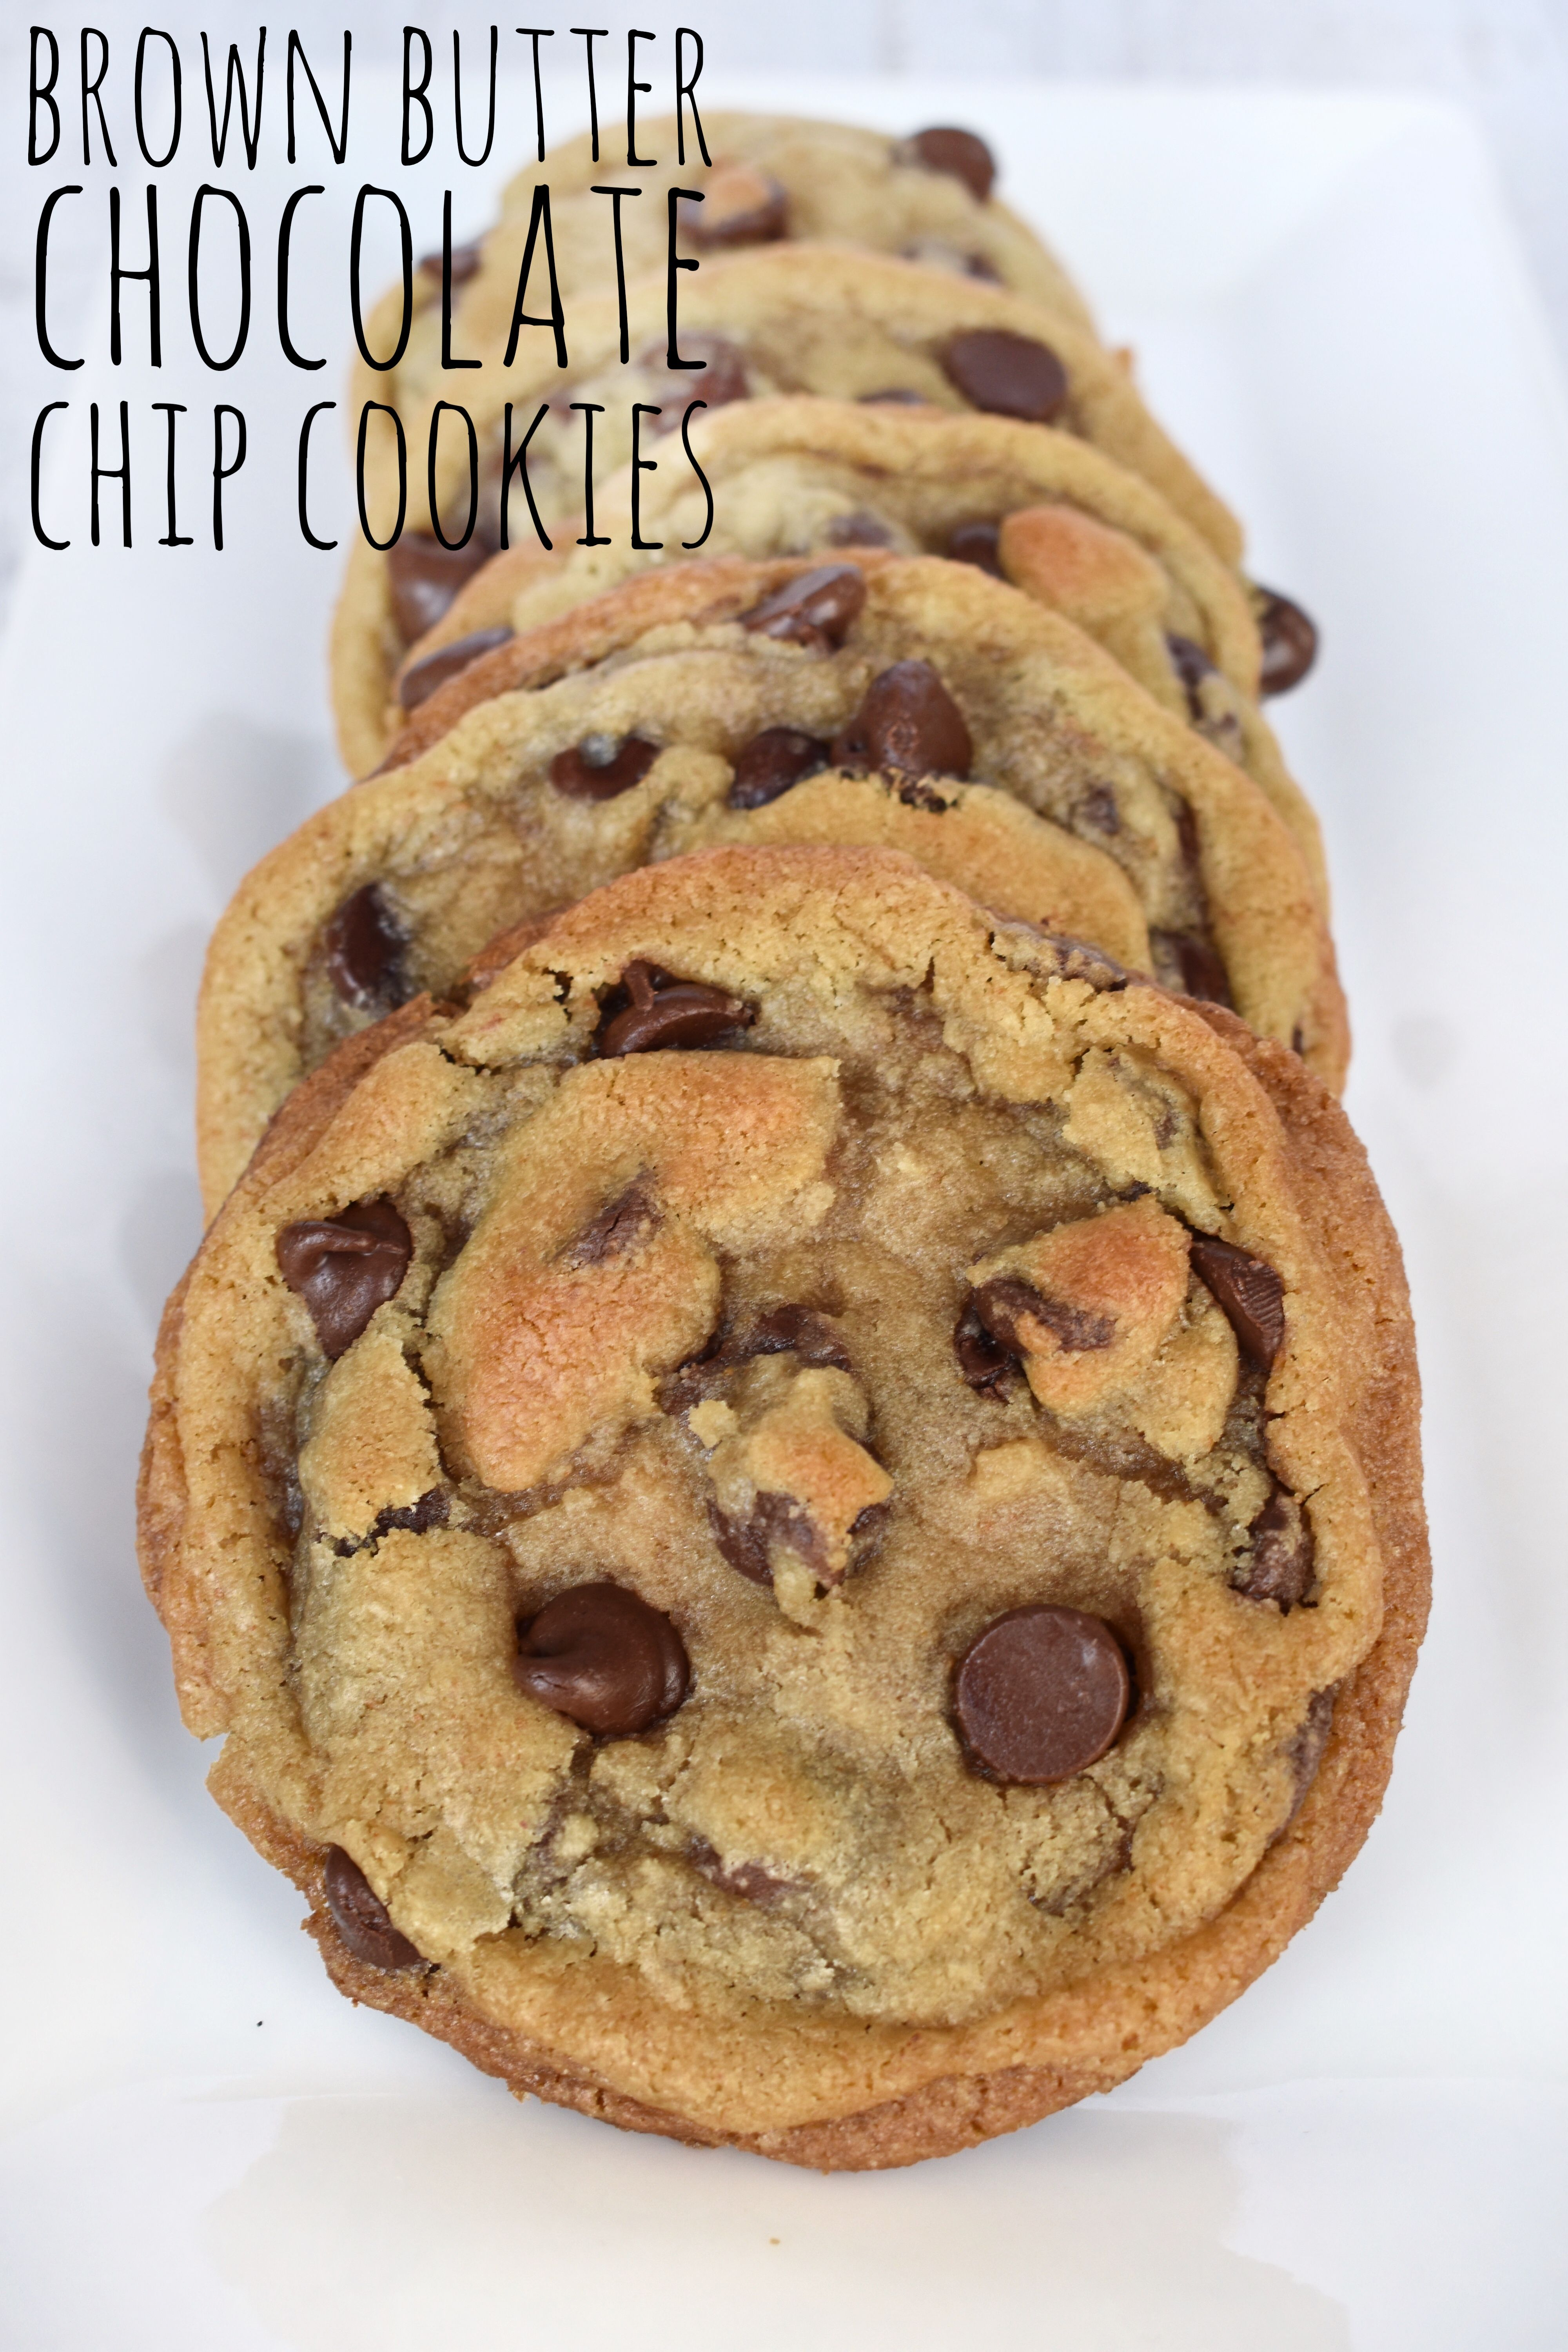 These are the PERFECT chocolate chip cookies. Crispy edges and gooey centers. These brown butter chocolate chip cookies will ruin all other cookies for you!